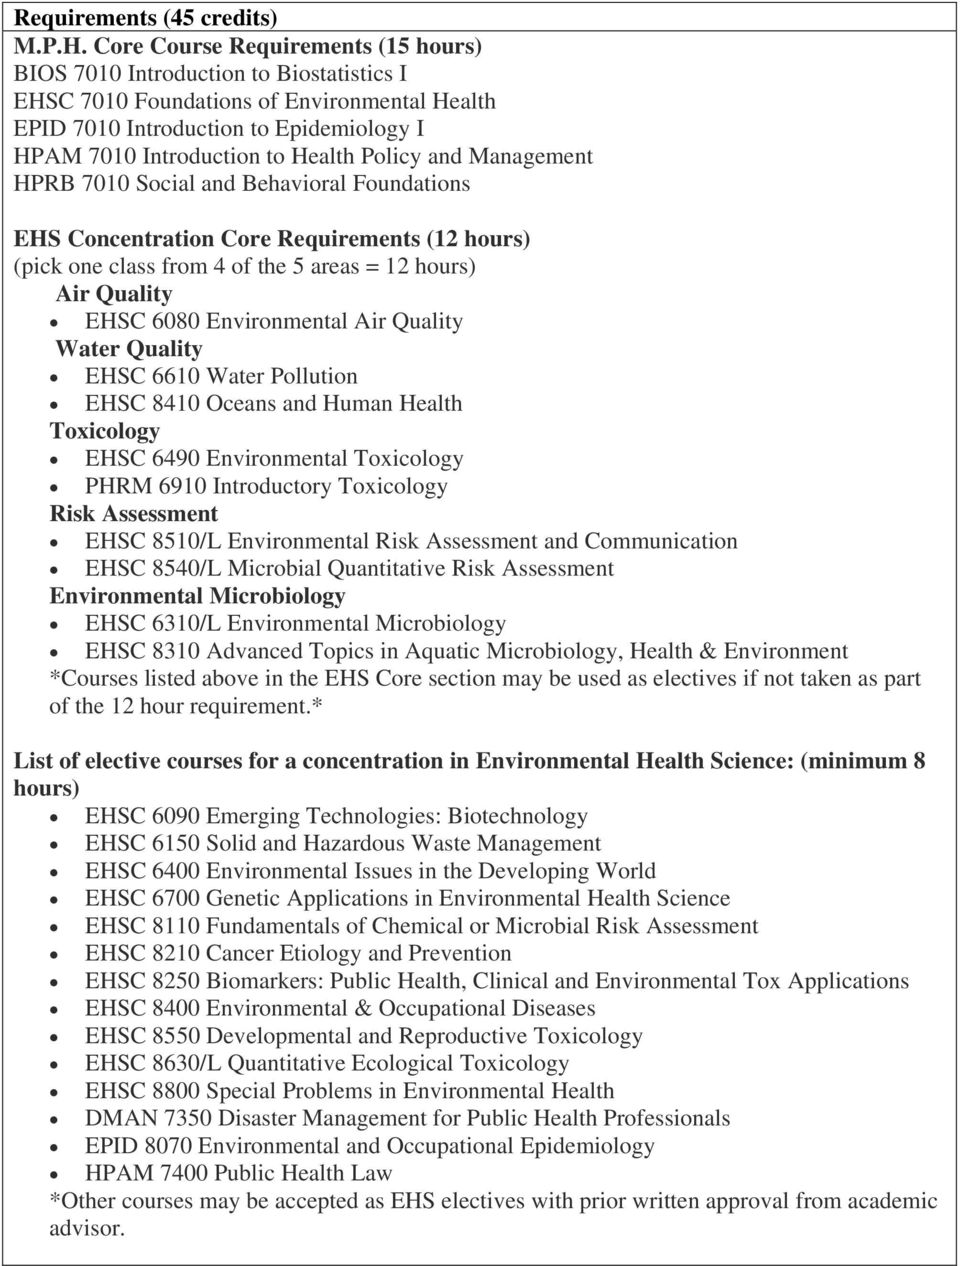 Policy and Management HPRB 7010 Social and Behavioral Foundations EHS Concentration Core Requirements (12 hours) (pick one class from 4 of the 5 areas = 12 hours) Air Quality EHSC 6080 Environmental